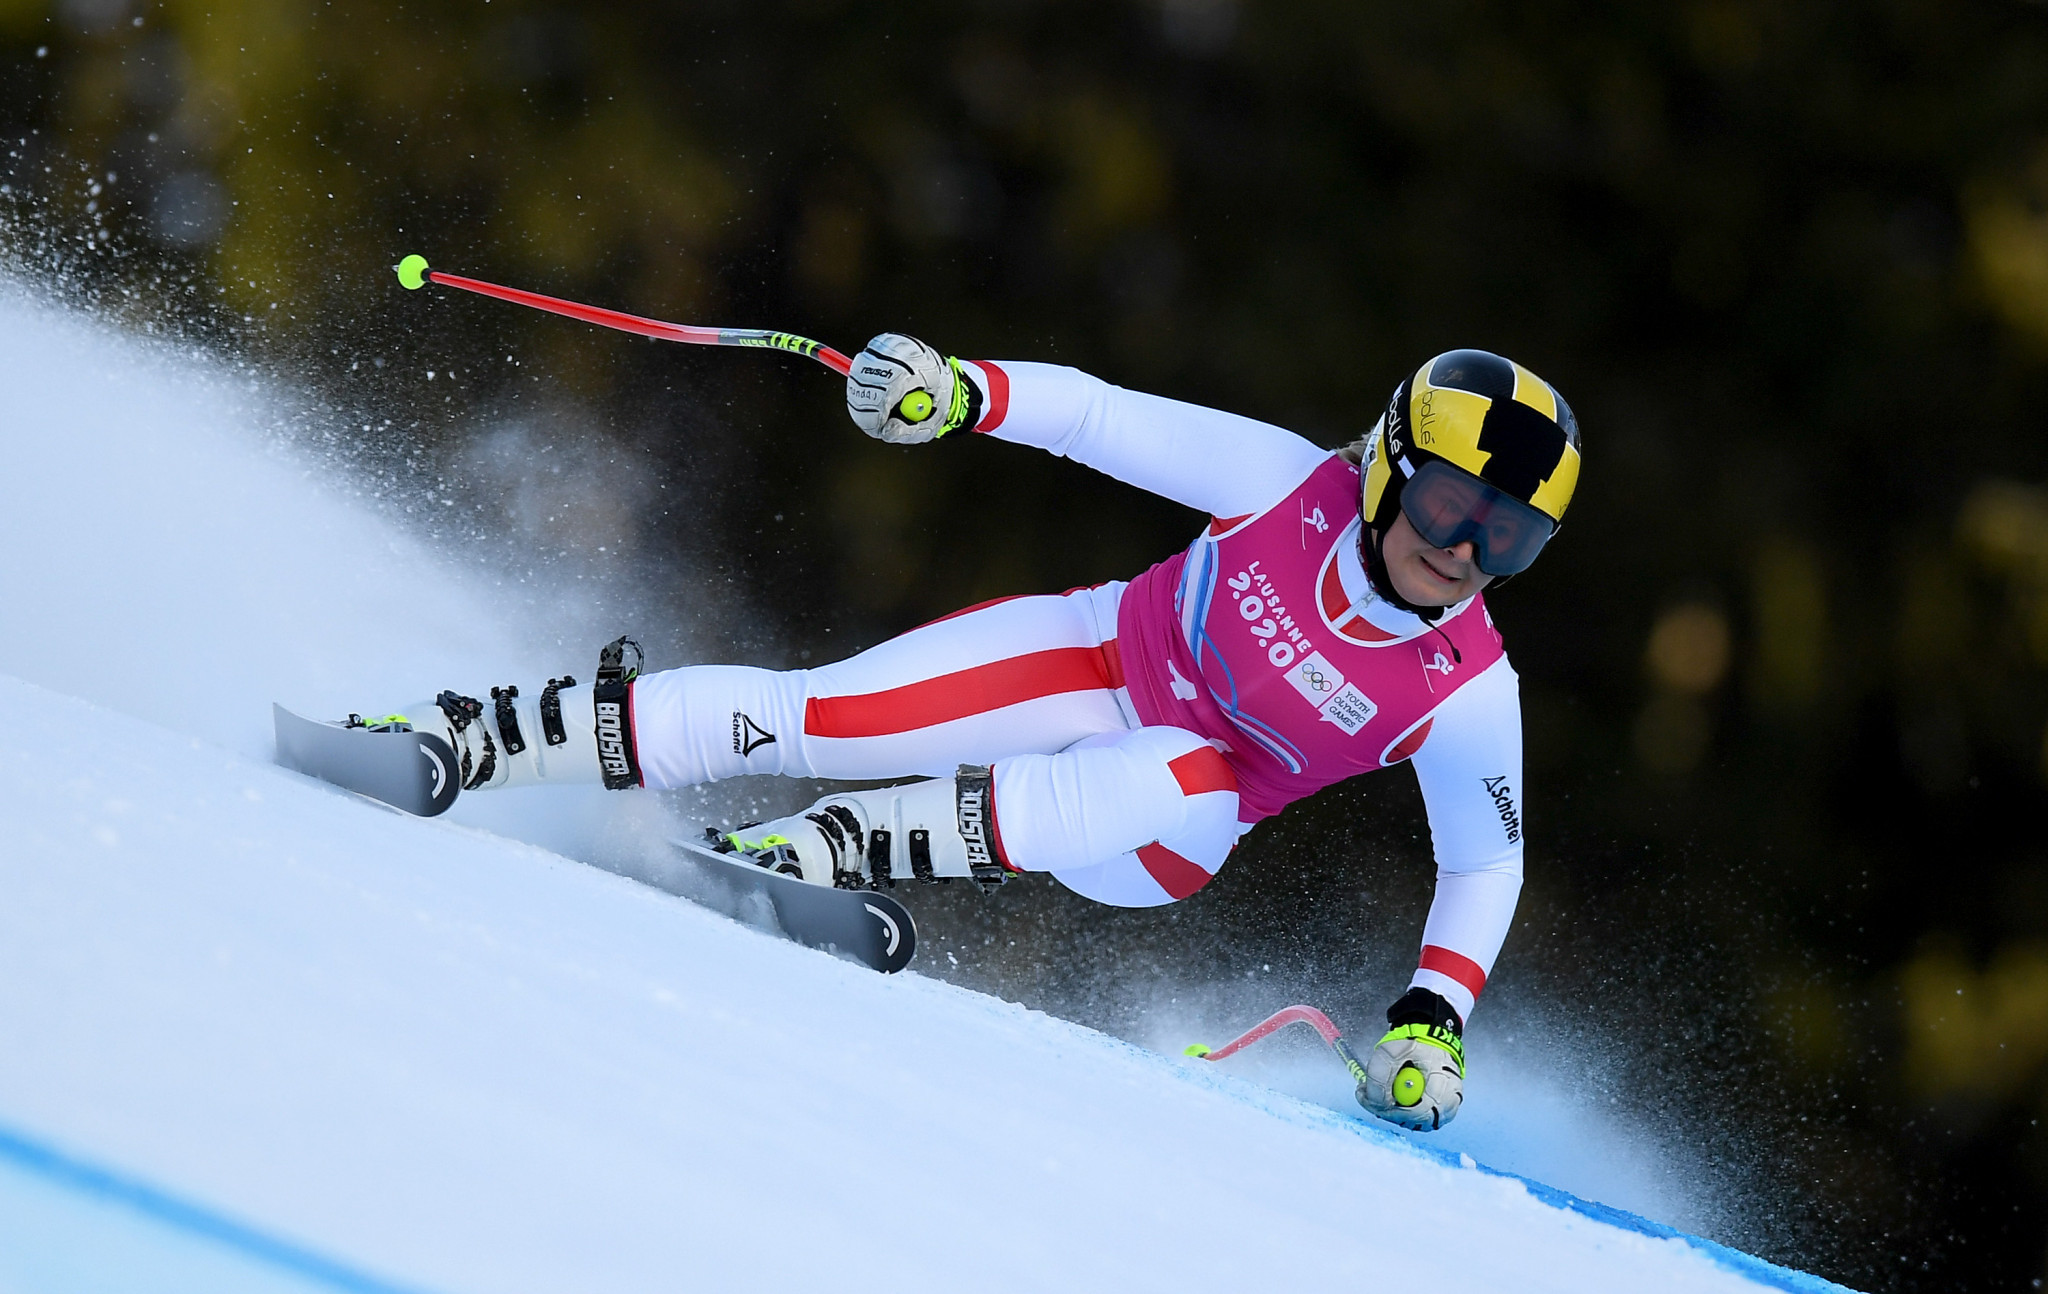 Amanda Salzgeber celebrated gold in the women's alpine combined event ©Getty Images